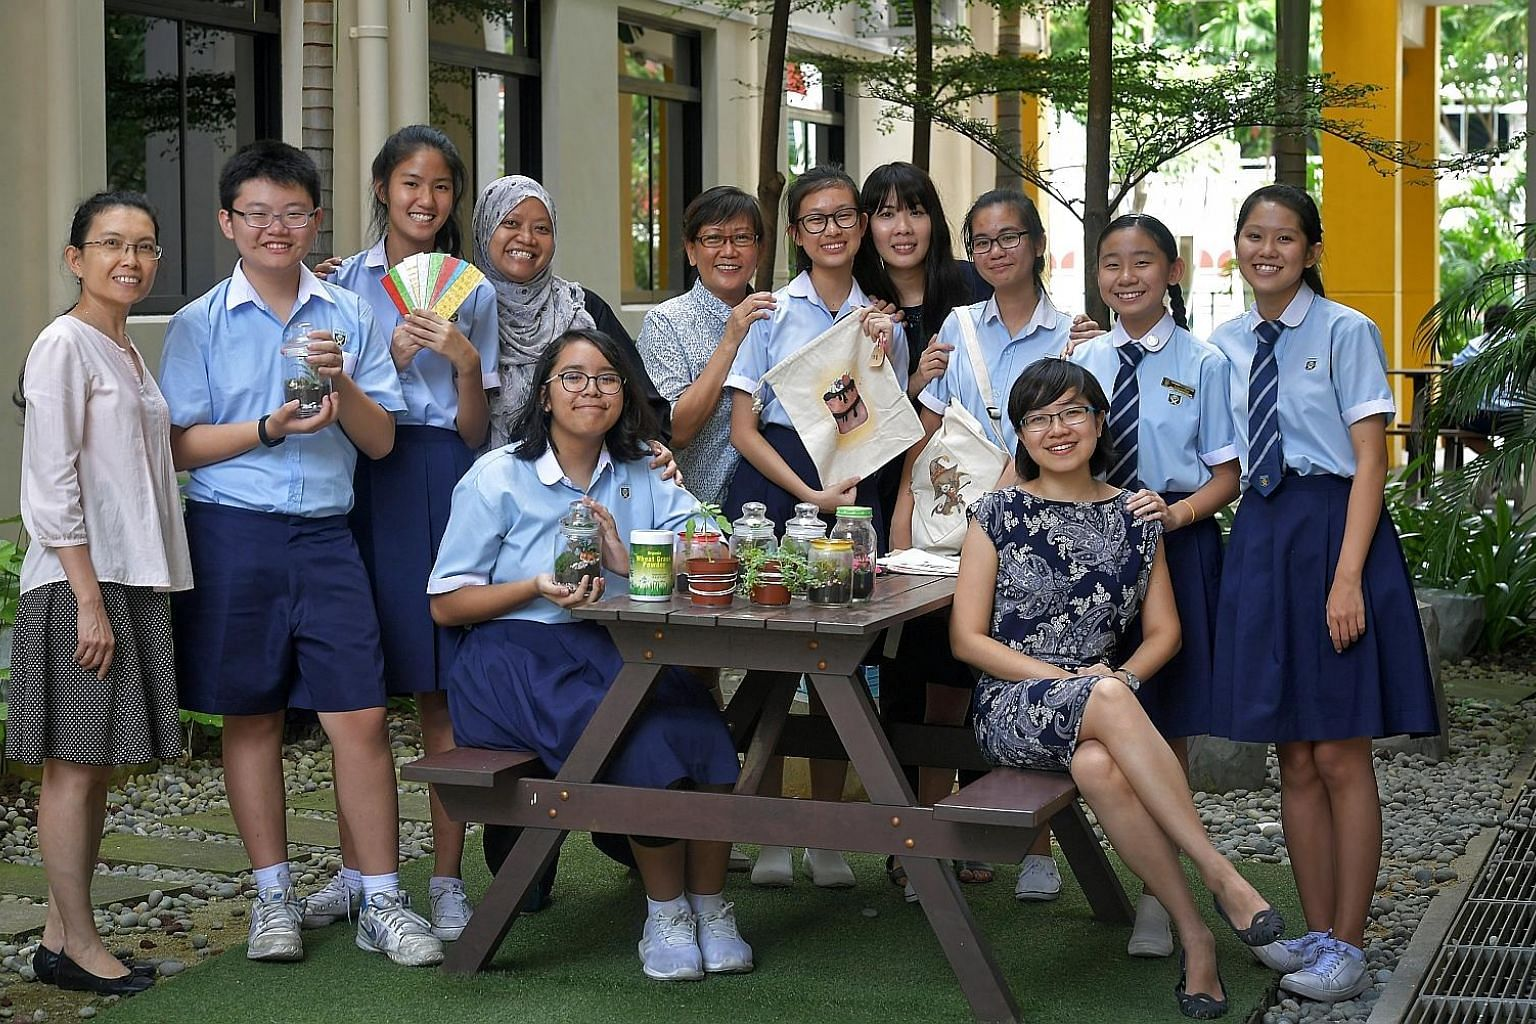 Teachers and students from Ngee Ann Secondary School involved in raising money for SPMF include (back row, from left): teacher Tan Foong Heng, Yu Haitao, Valerie Tang, teachers Ashiqin Abdul Ra'uuf and Lim Soon Jong, Casselynn Chua, teacher Sarene Lo